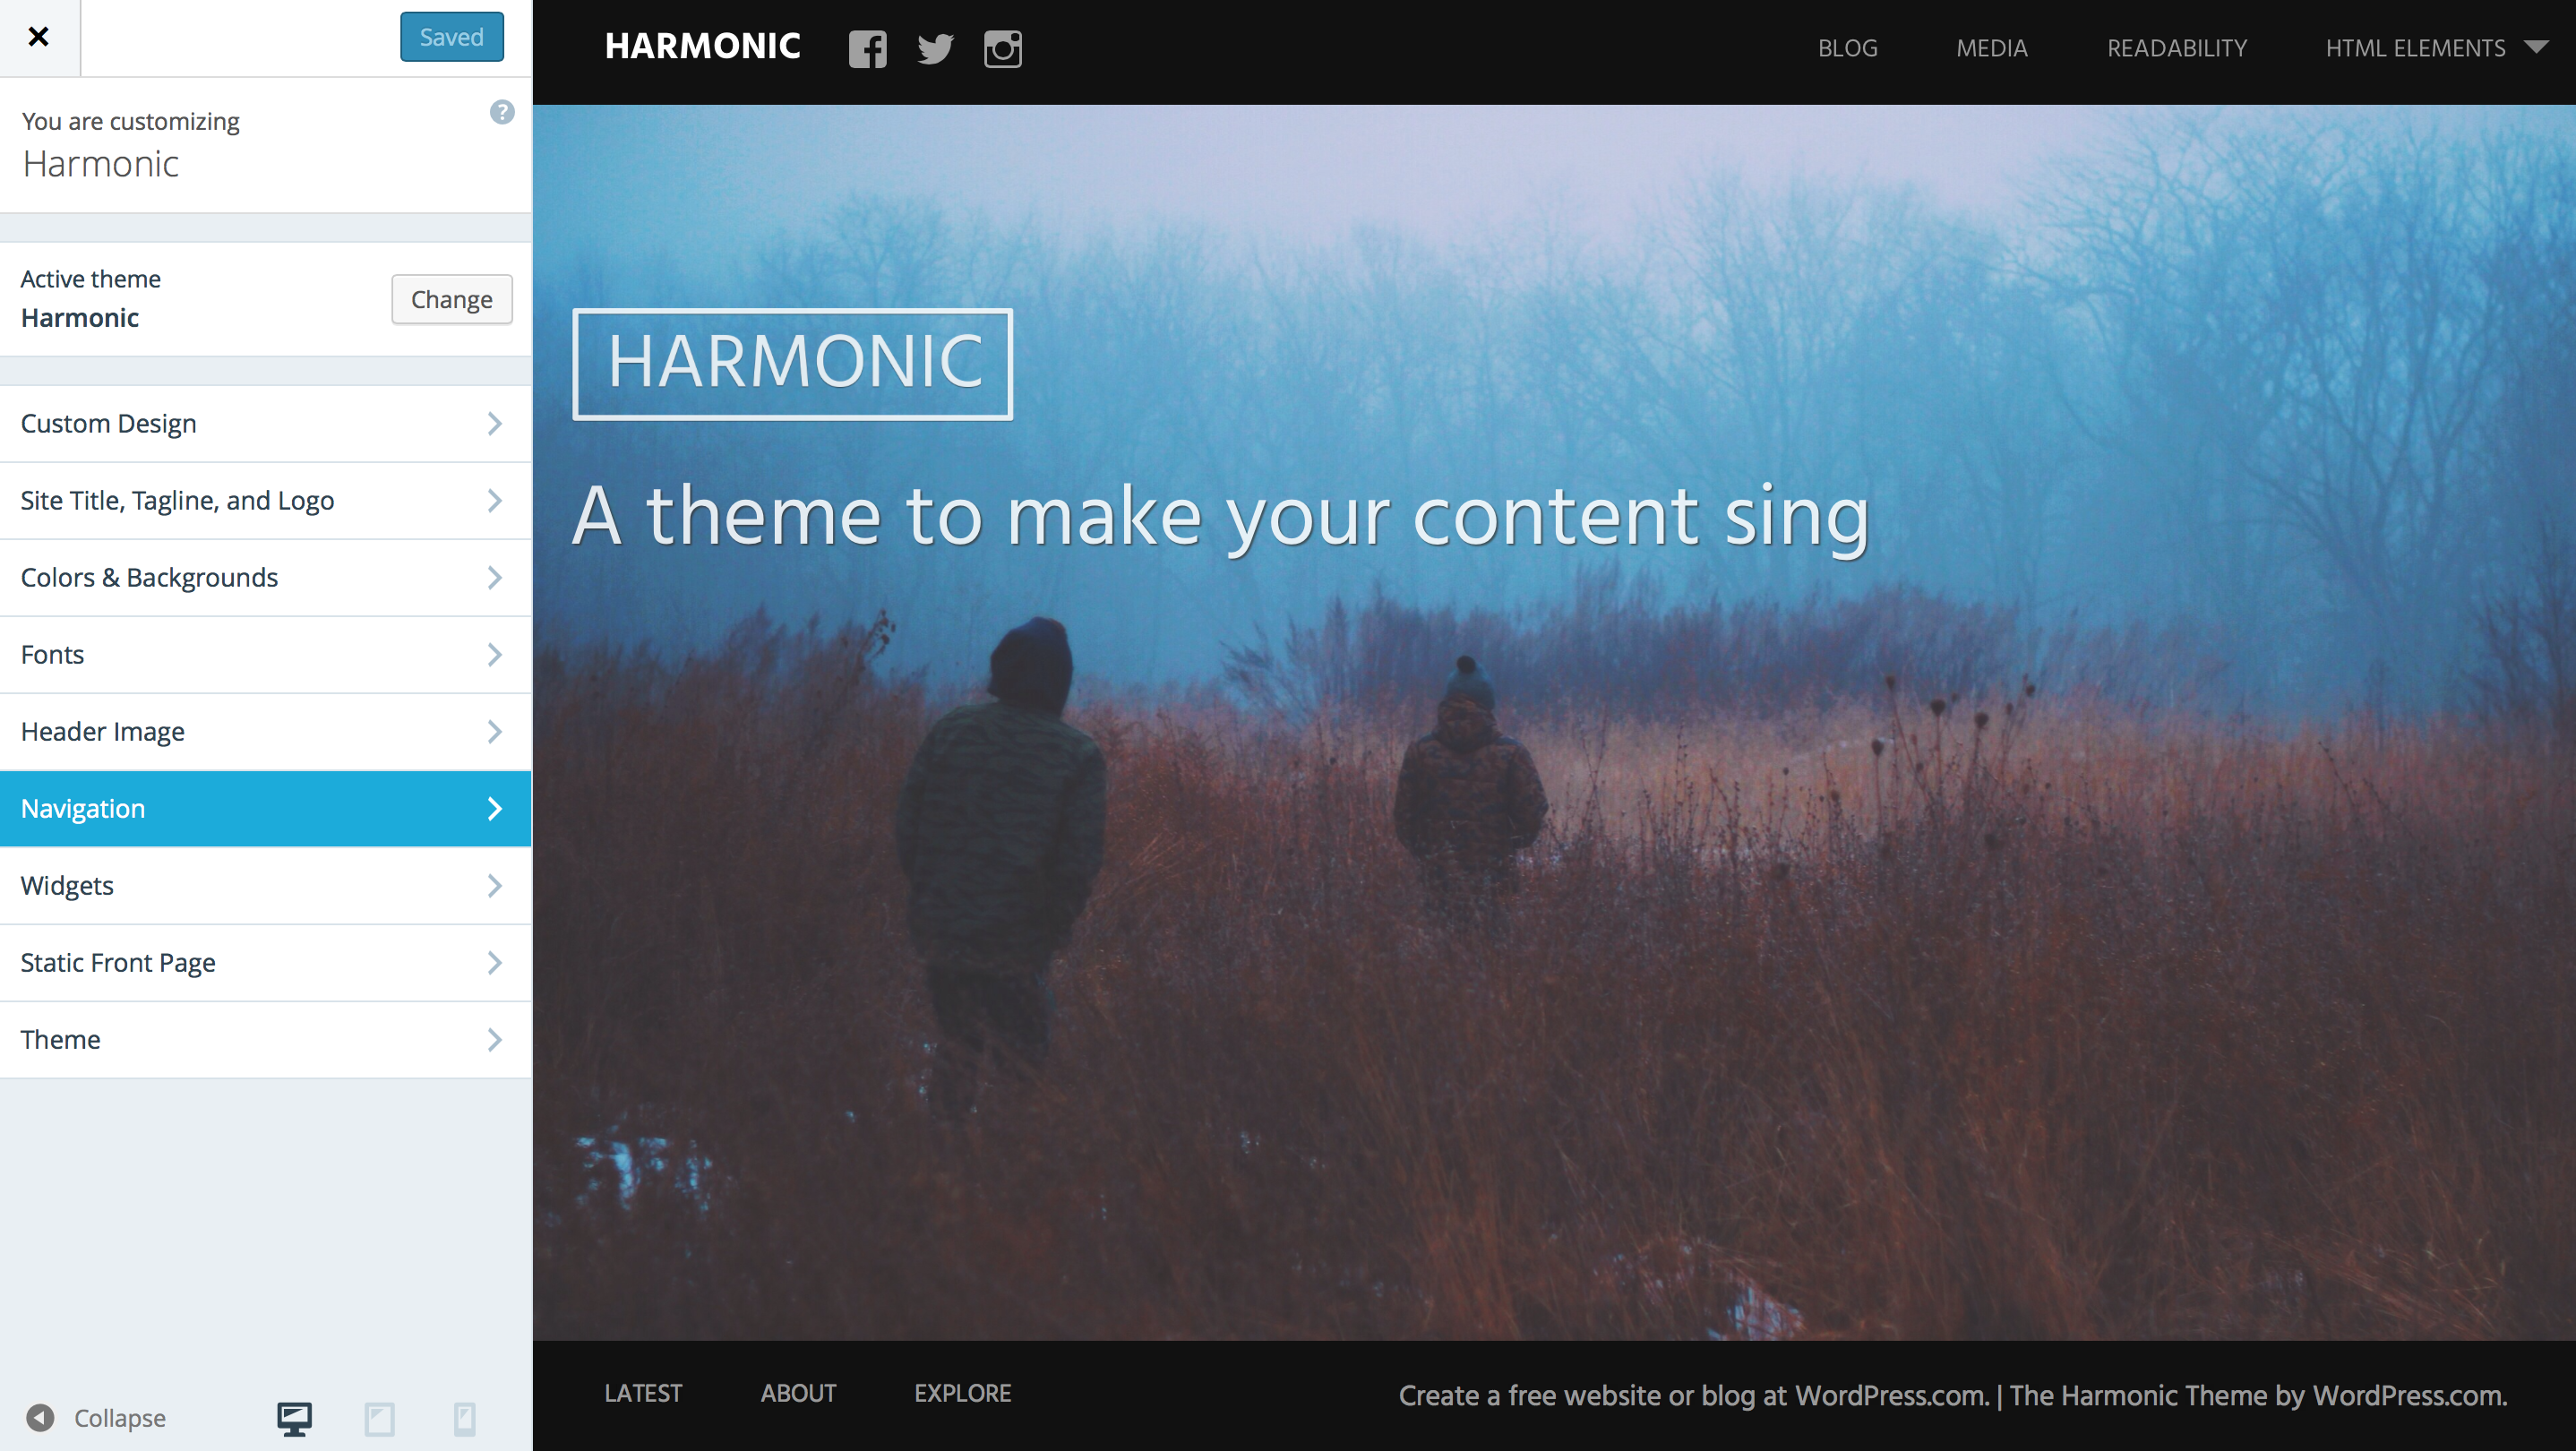 harmonic theme wordpress themes for at wordpress com harmonic customizer